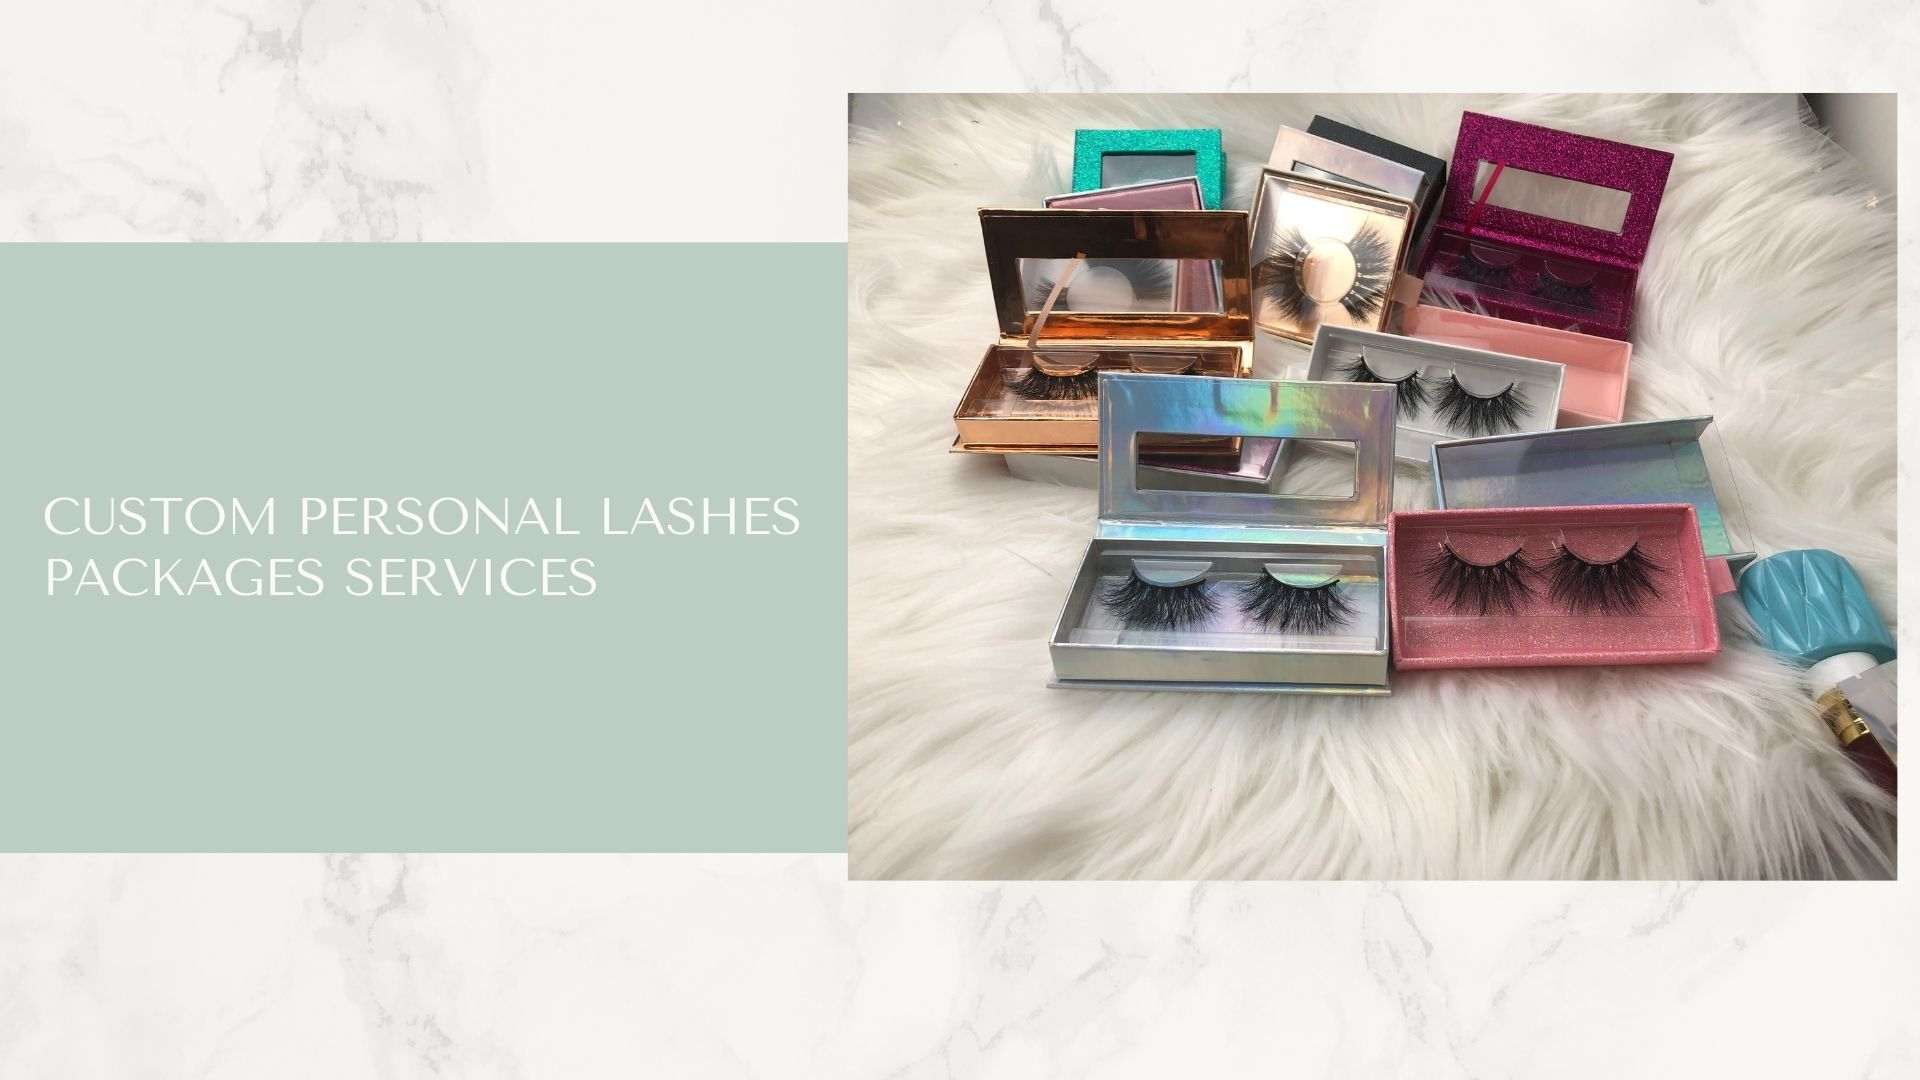 Custom Personal Lashes Packages Services